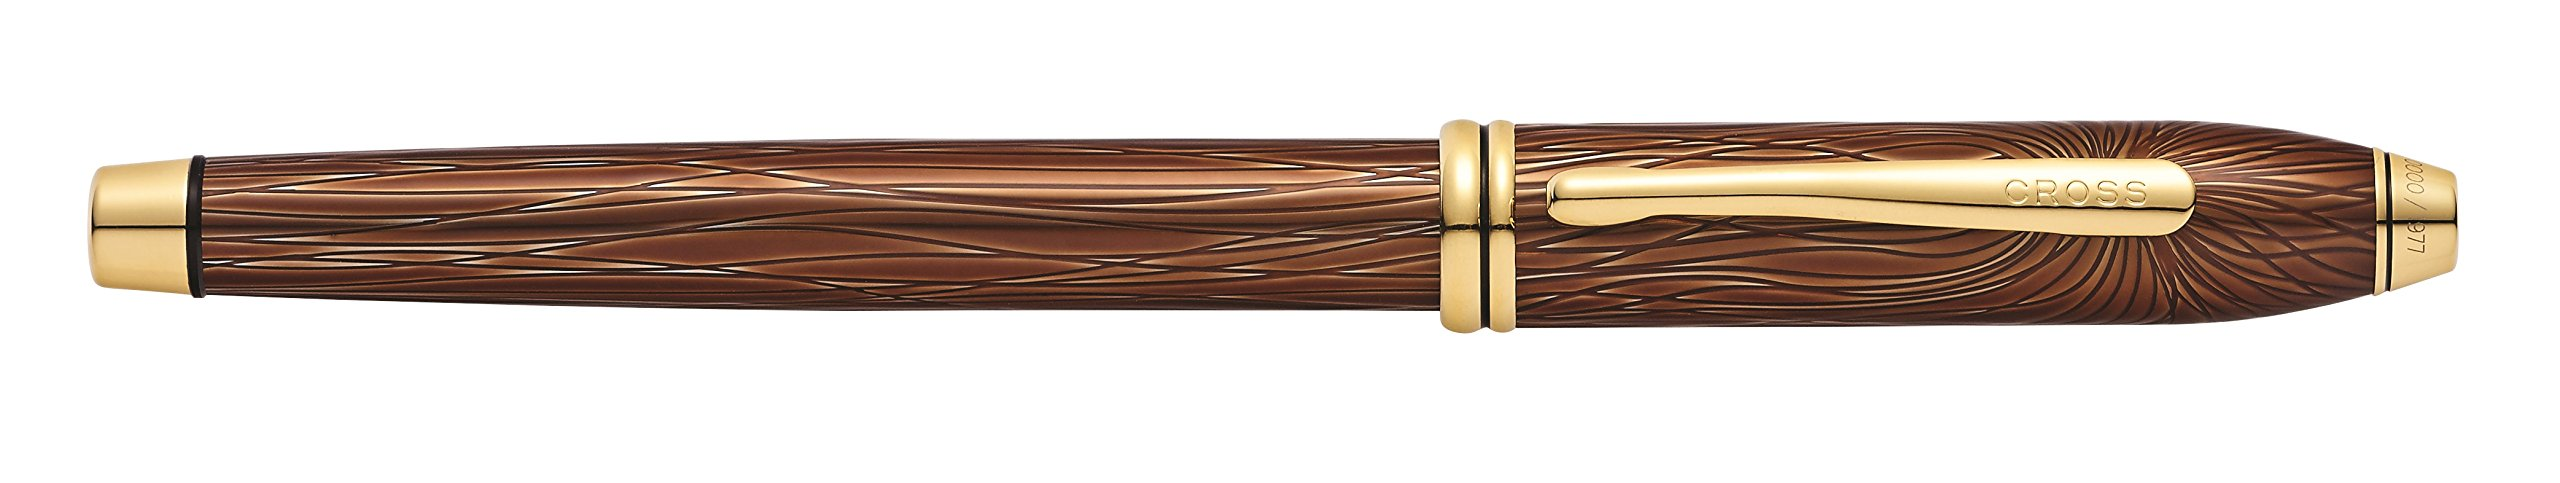 Cross Townsend Star Wars Limited Edition Chewbacca Selectip Rollerball Pen by Cross (Image #3)